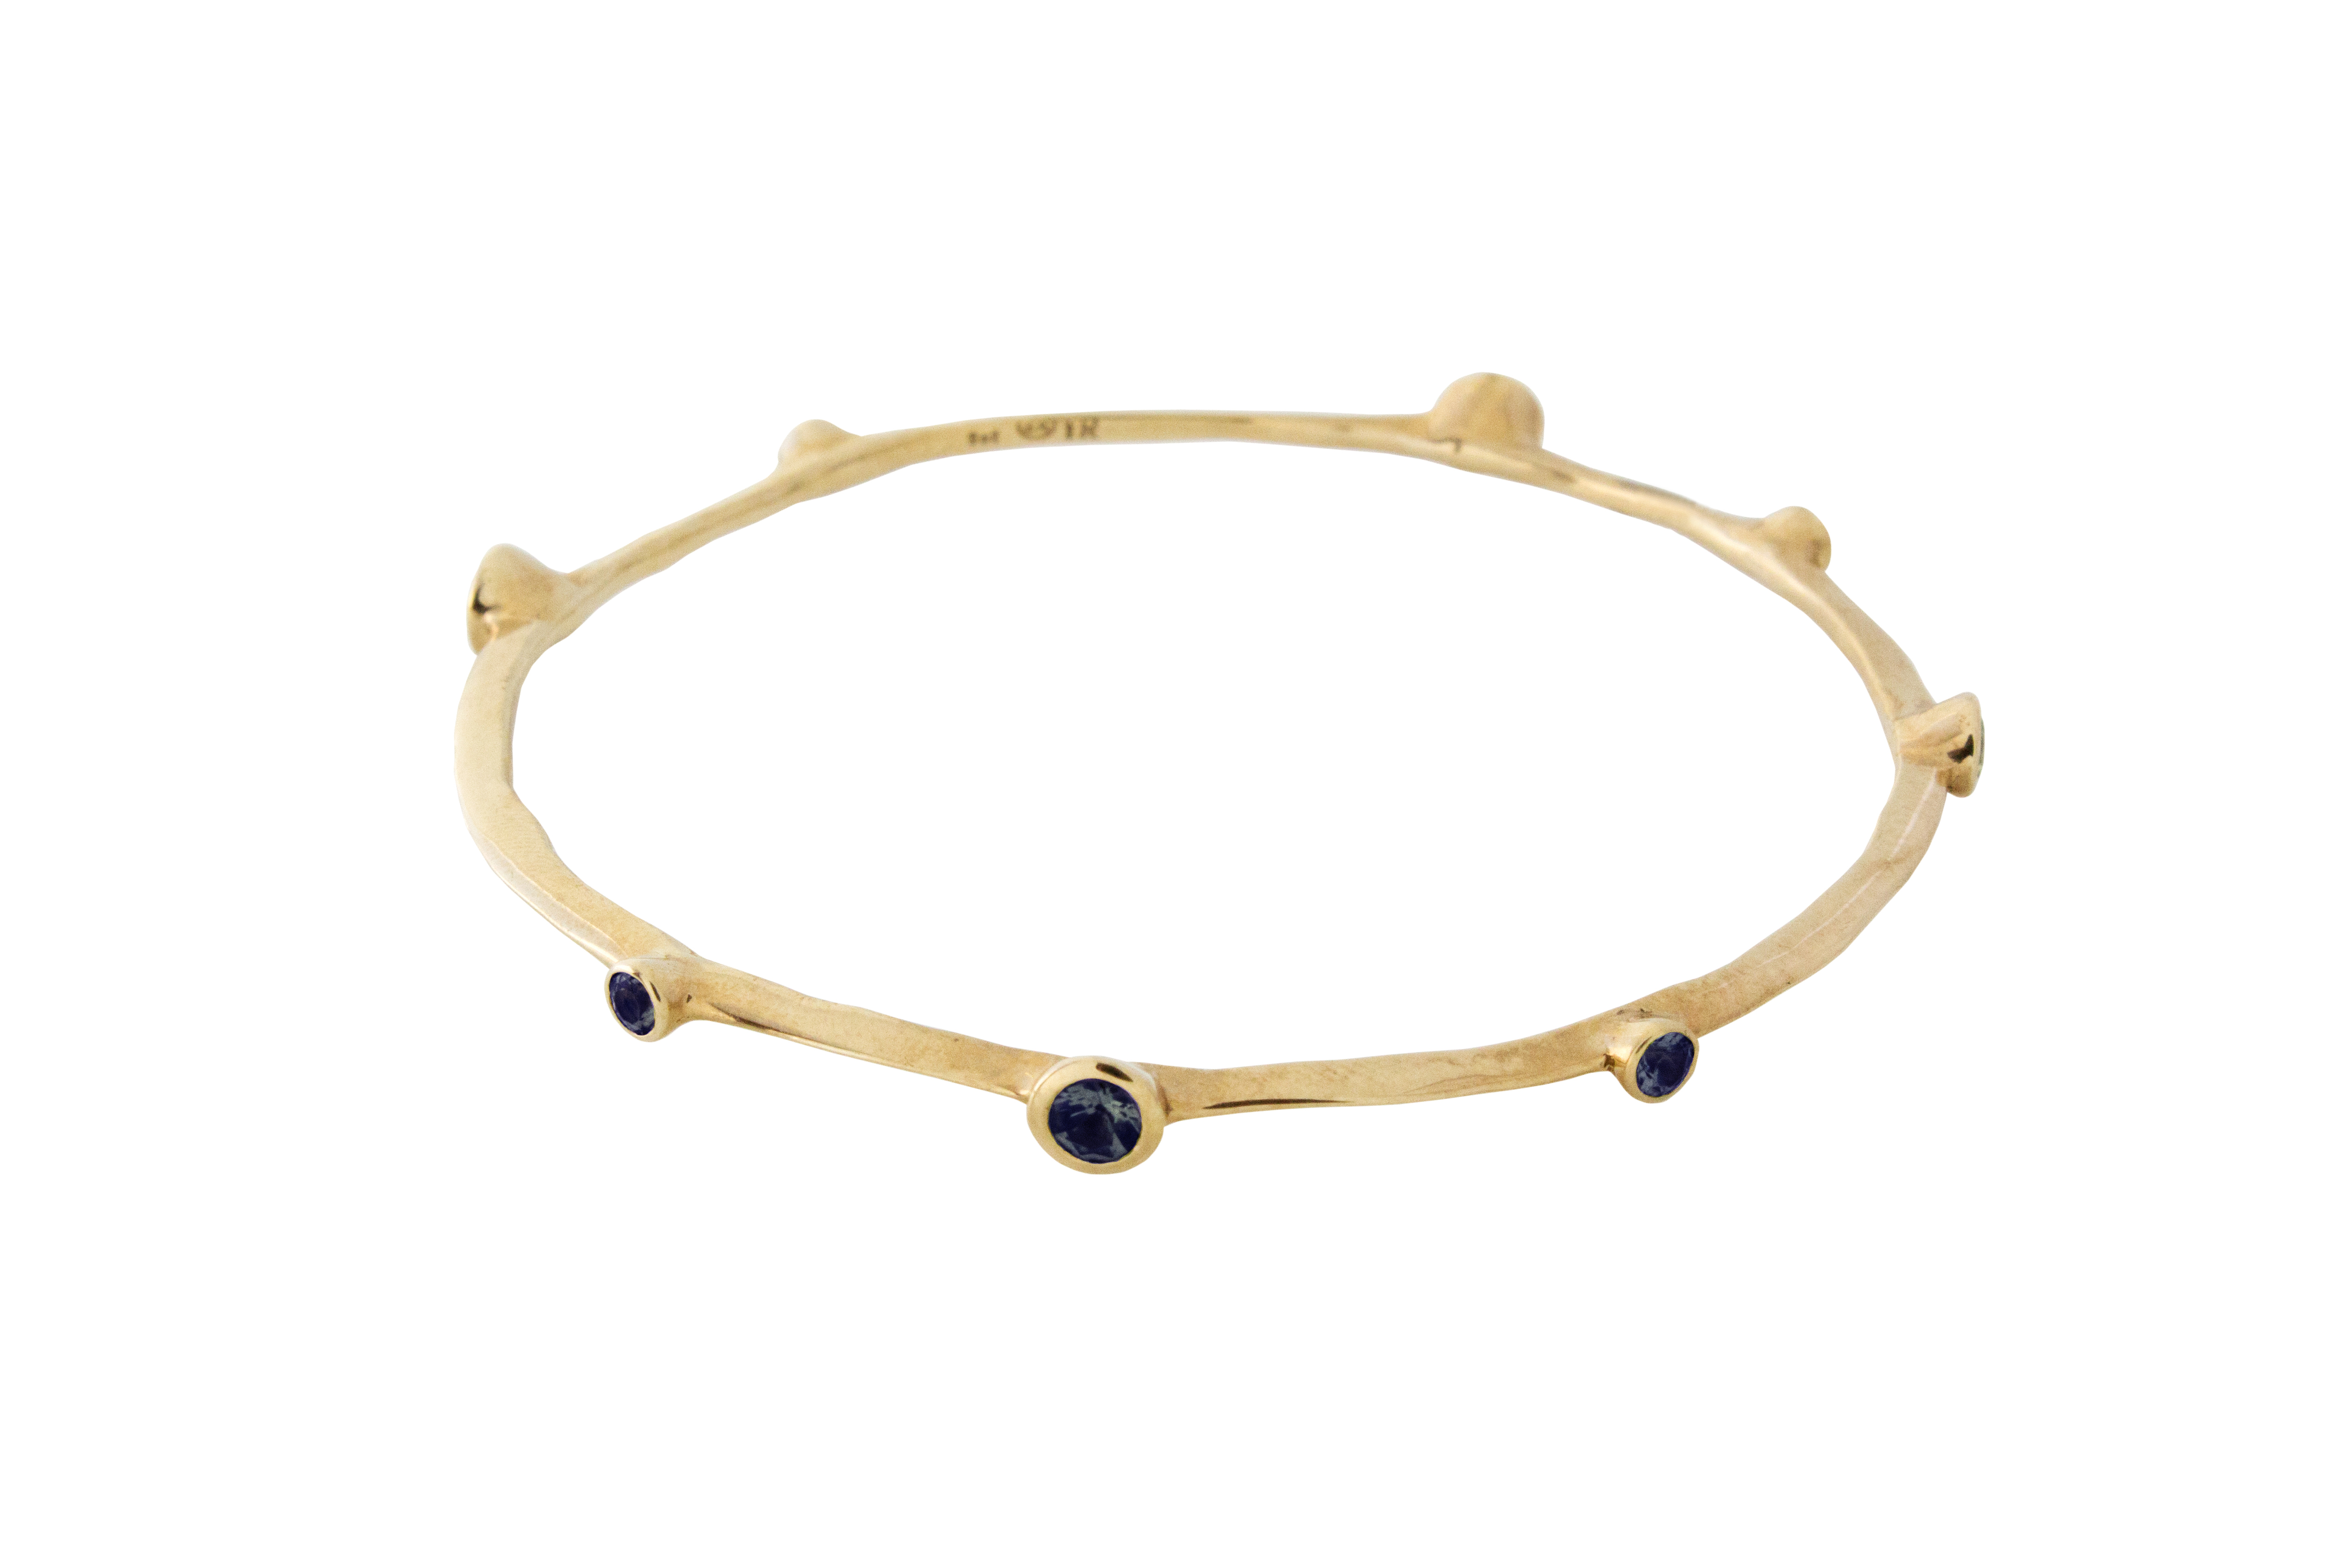 Iolite Bangle in 9ct Yellow Gold